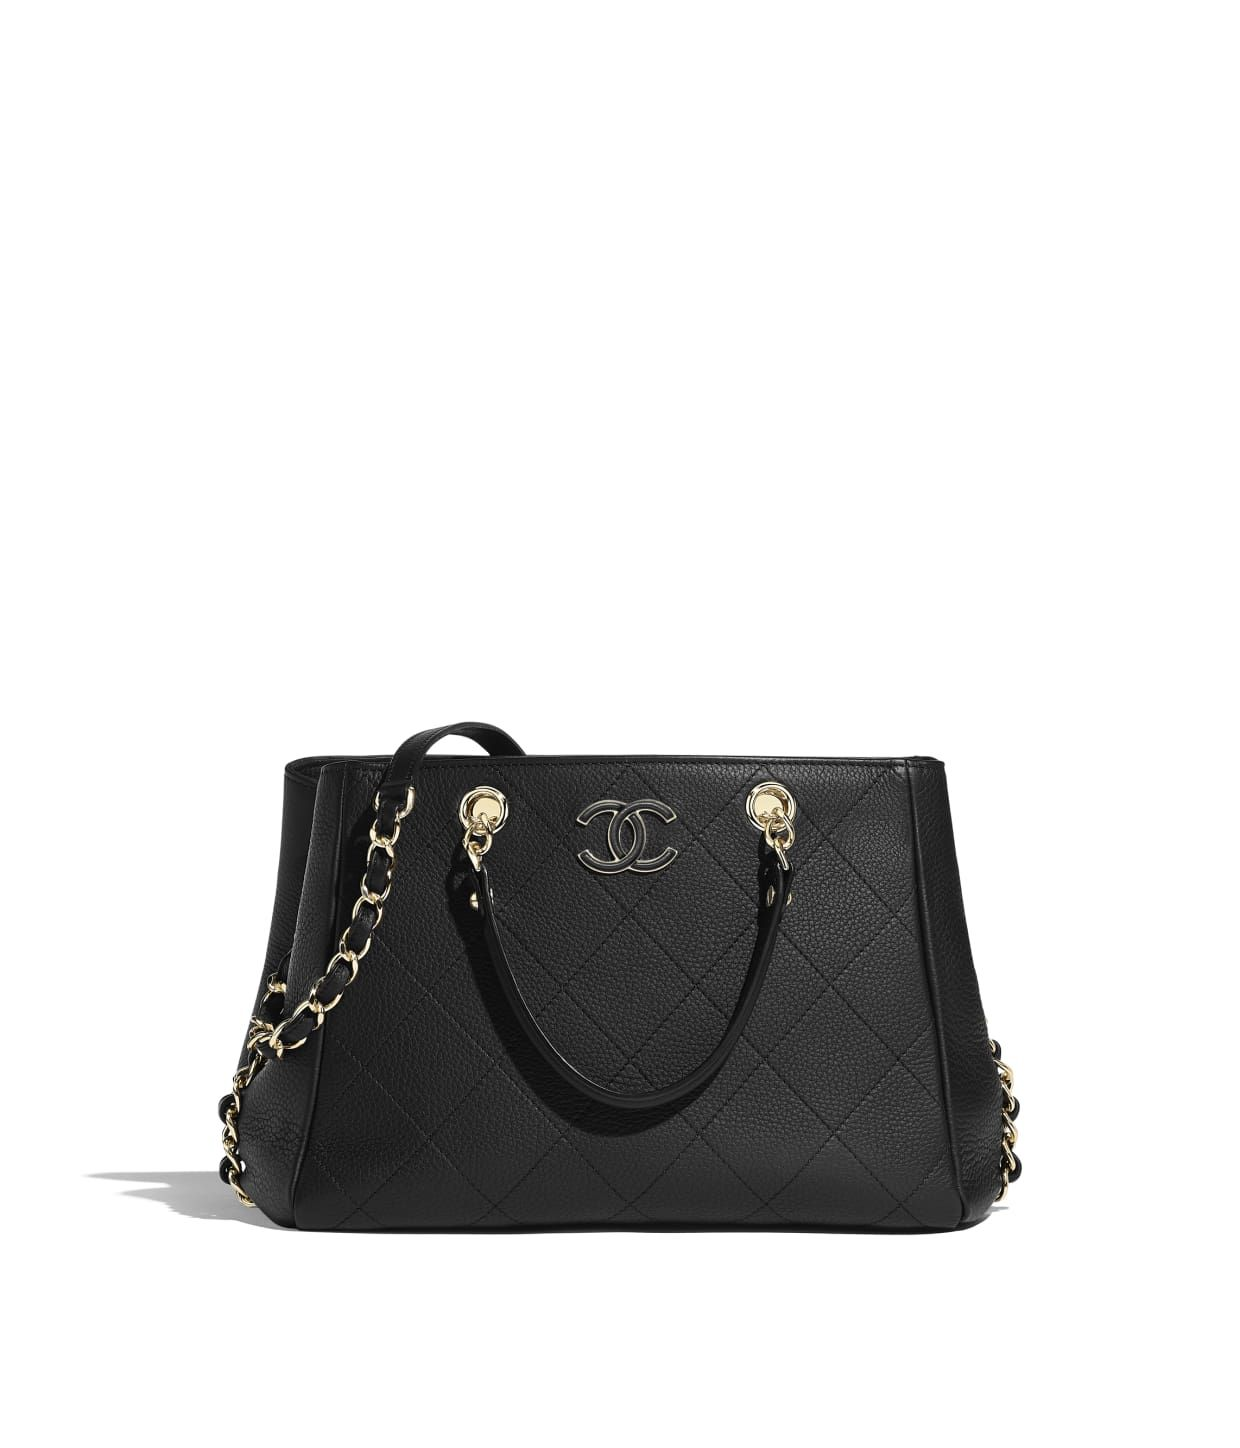 4fd14b47a4f7 Discover the CHANEL Bullskin & Gold-Tone Metal Black Small Shopping Bag,  and explore the artistry and craftsmanship of the House of CHANEL.